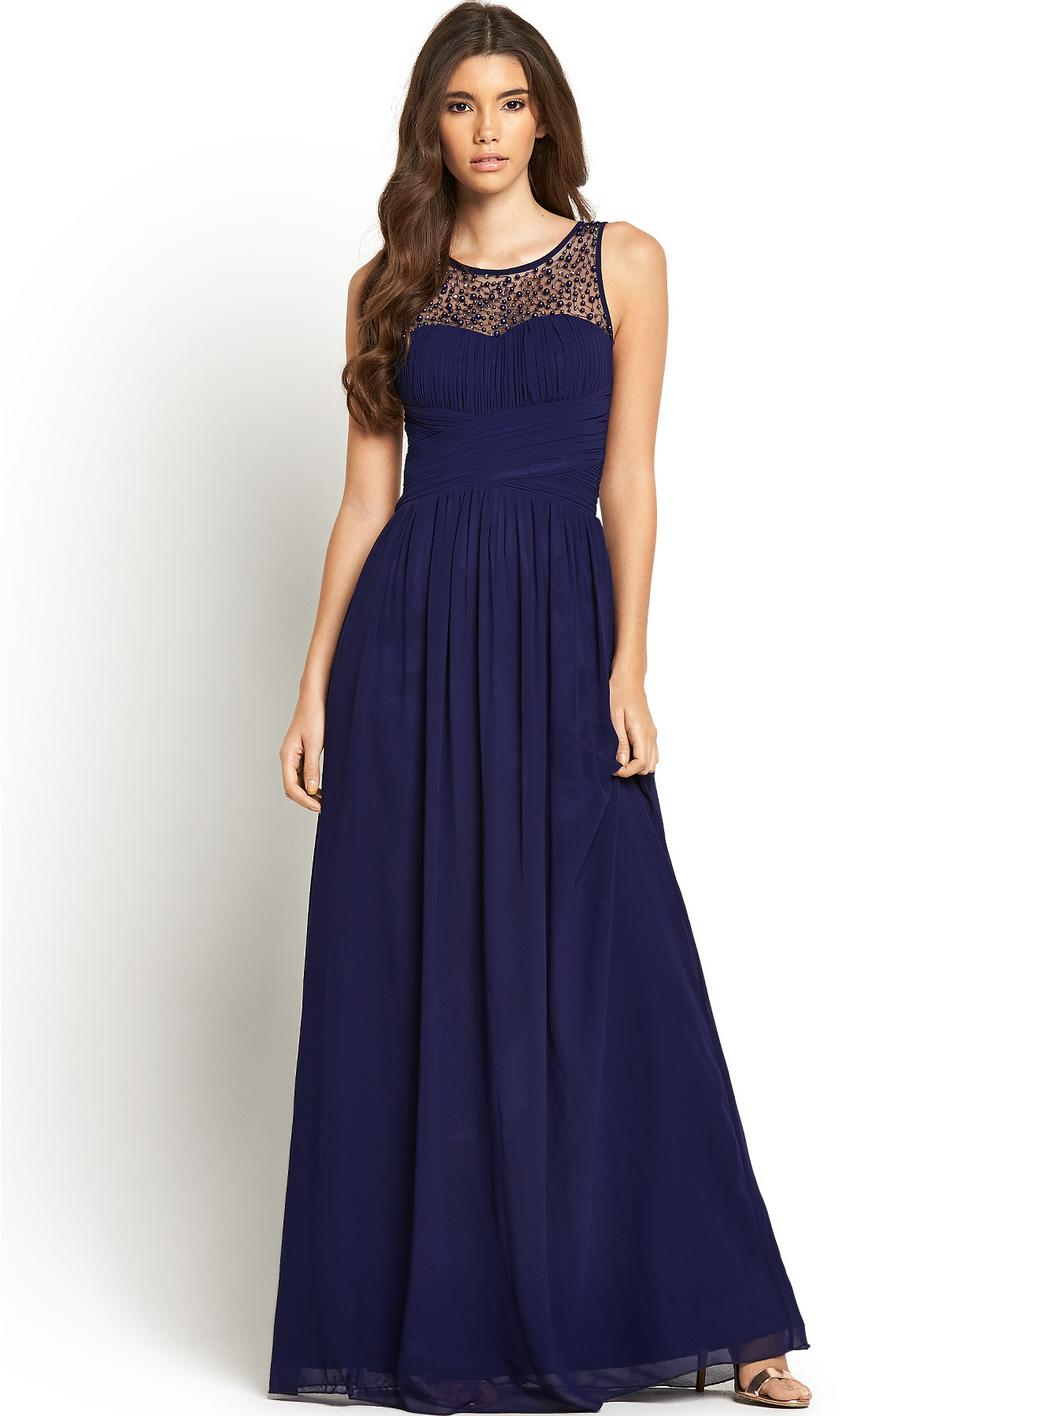 Want to take your style to the maxi? Our long dress shop has the perfect maxi dress for every occasion. This is the ultimate throw on and go style, ideal if you're in need of a wedding guest dress, a vacation dress, New Year's Eve dress, bridesmaid dress, or casual goodforexbinar.cf scroll through our selection to find your perfect pick, whether it's print or solid.